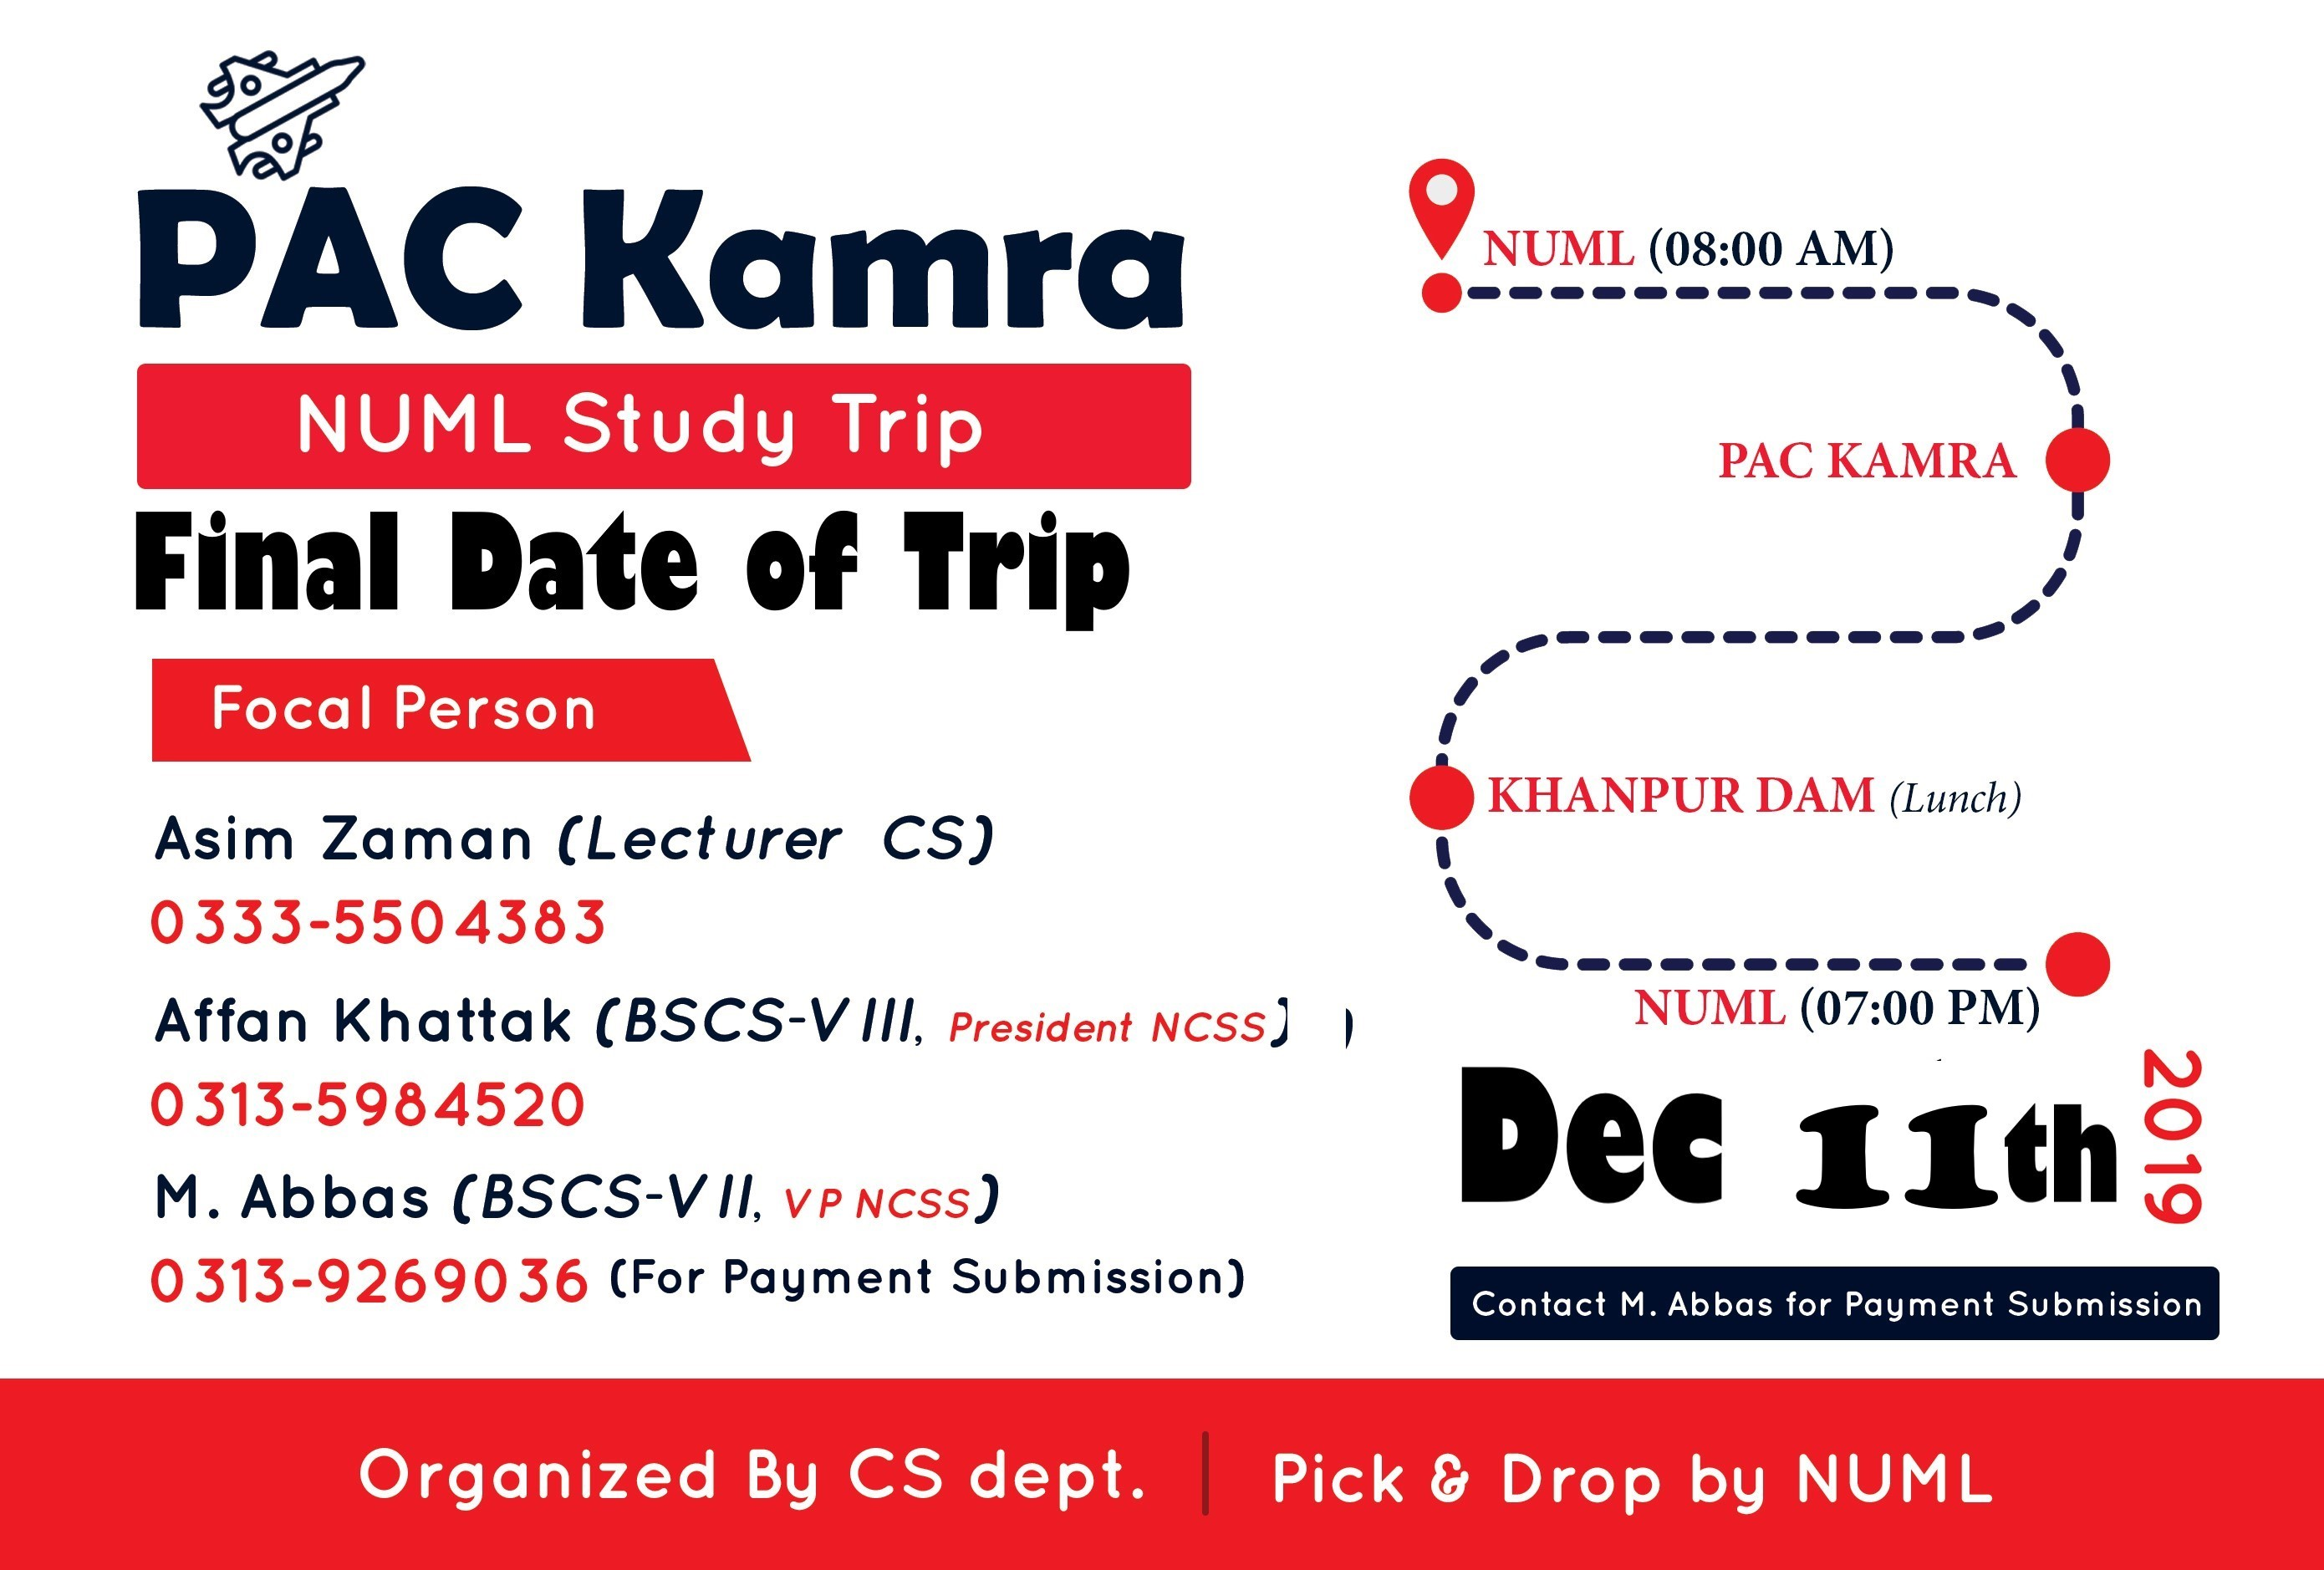 New Date for 'PAC Kamra' Trip Announced